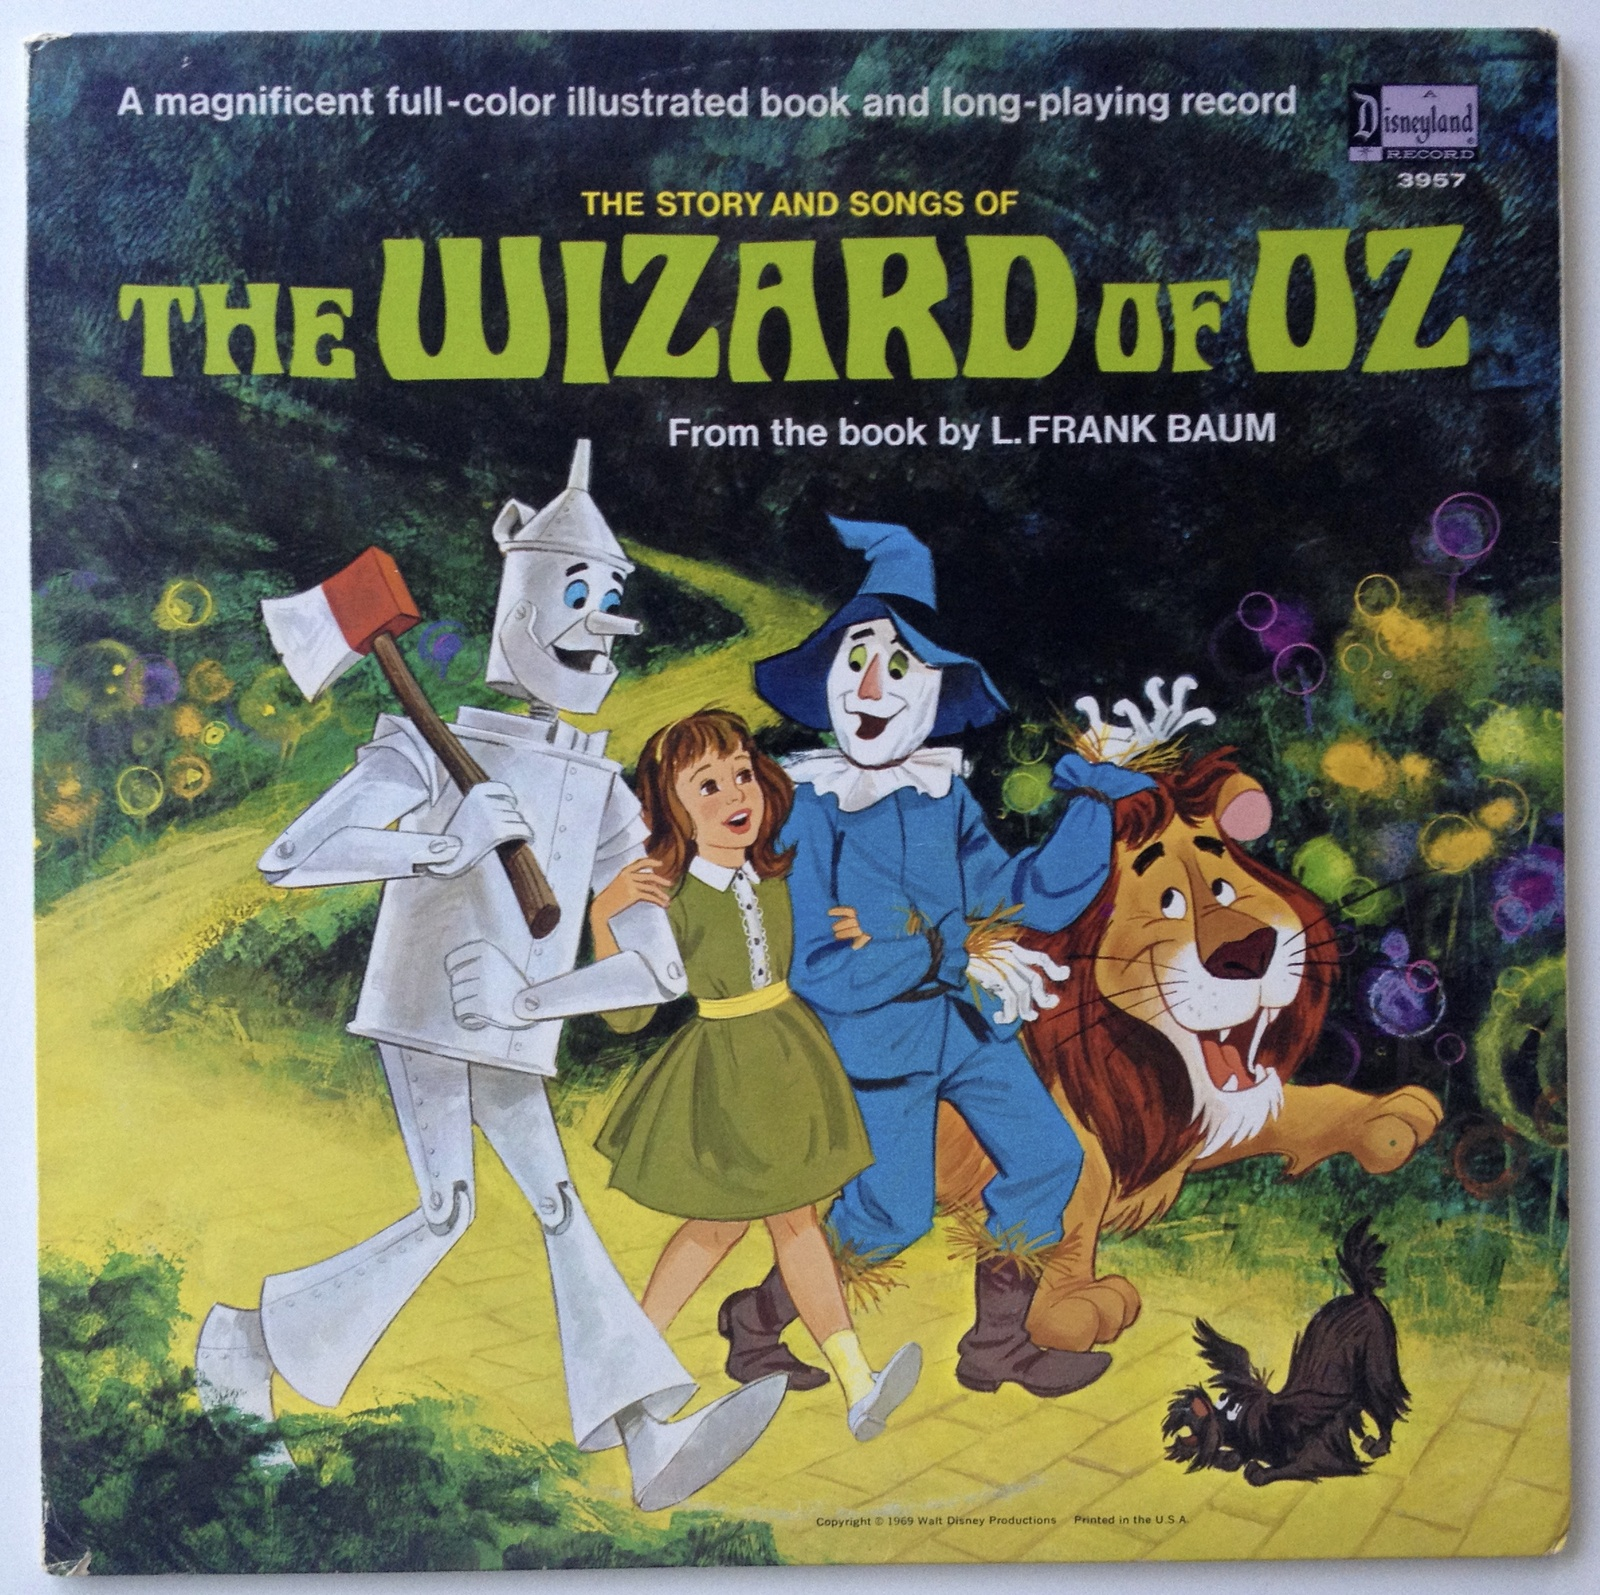 The Story and Songs of The Wizard of Oz LP Vinyl Record Album, Disneyland - 3957